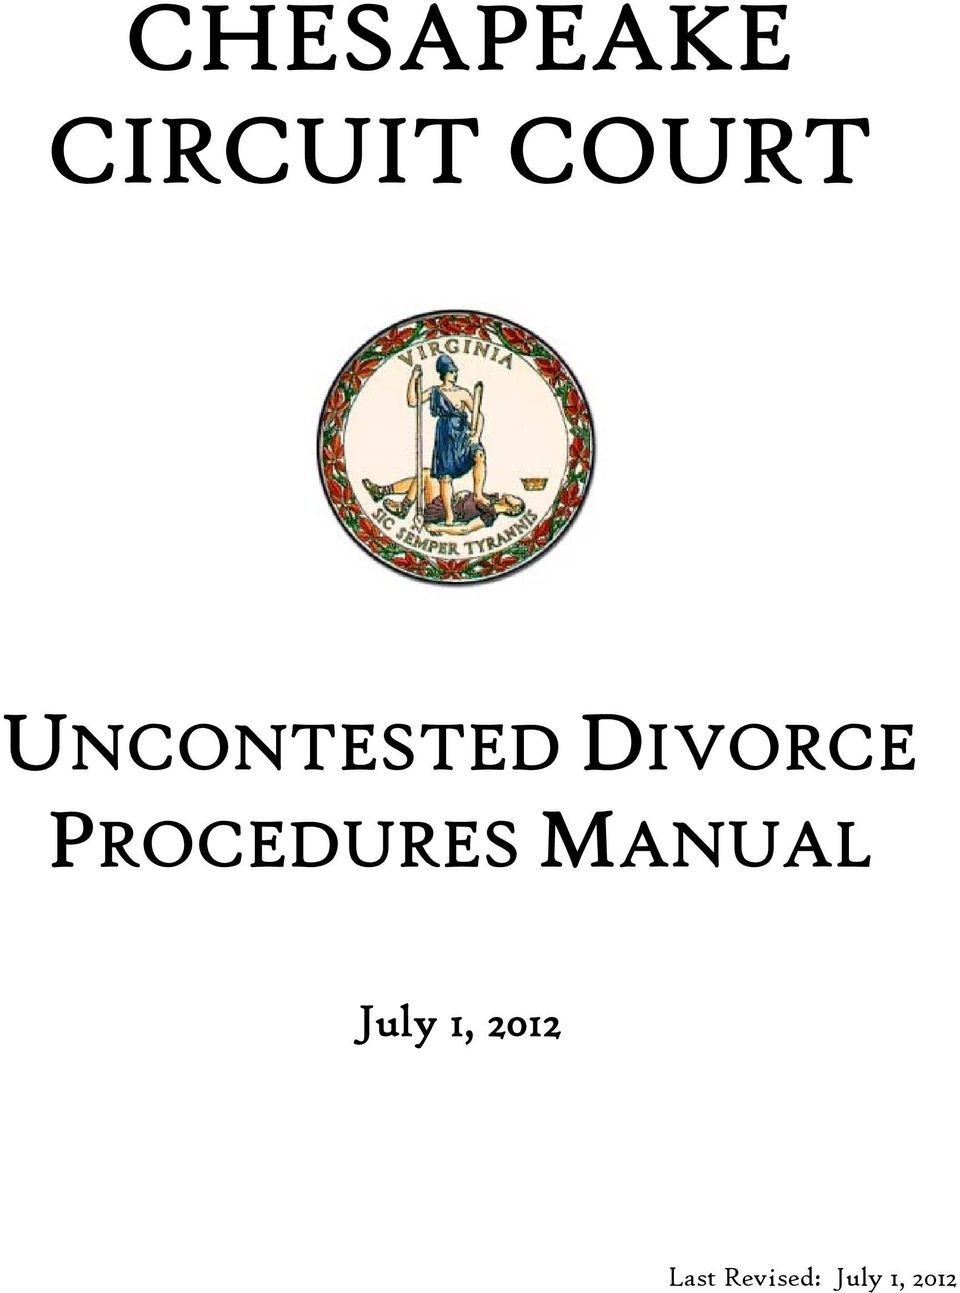 PROCEDURES MANUAL July 1,